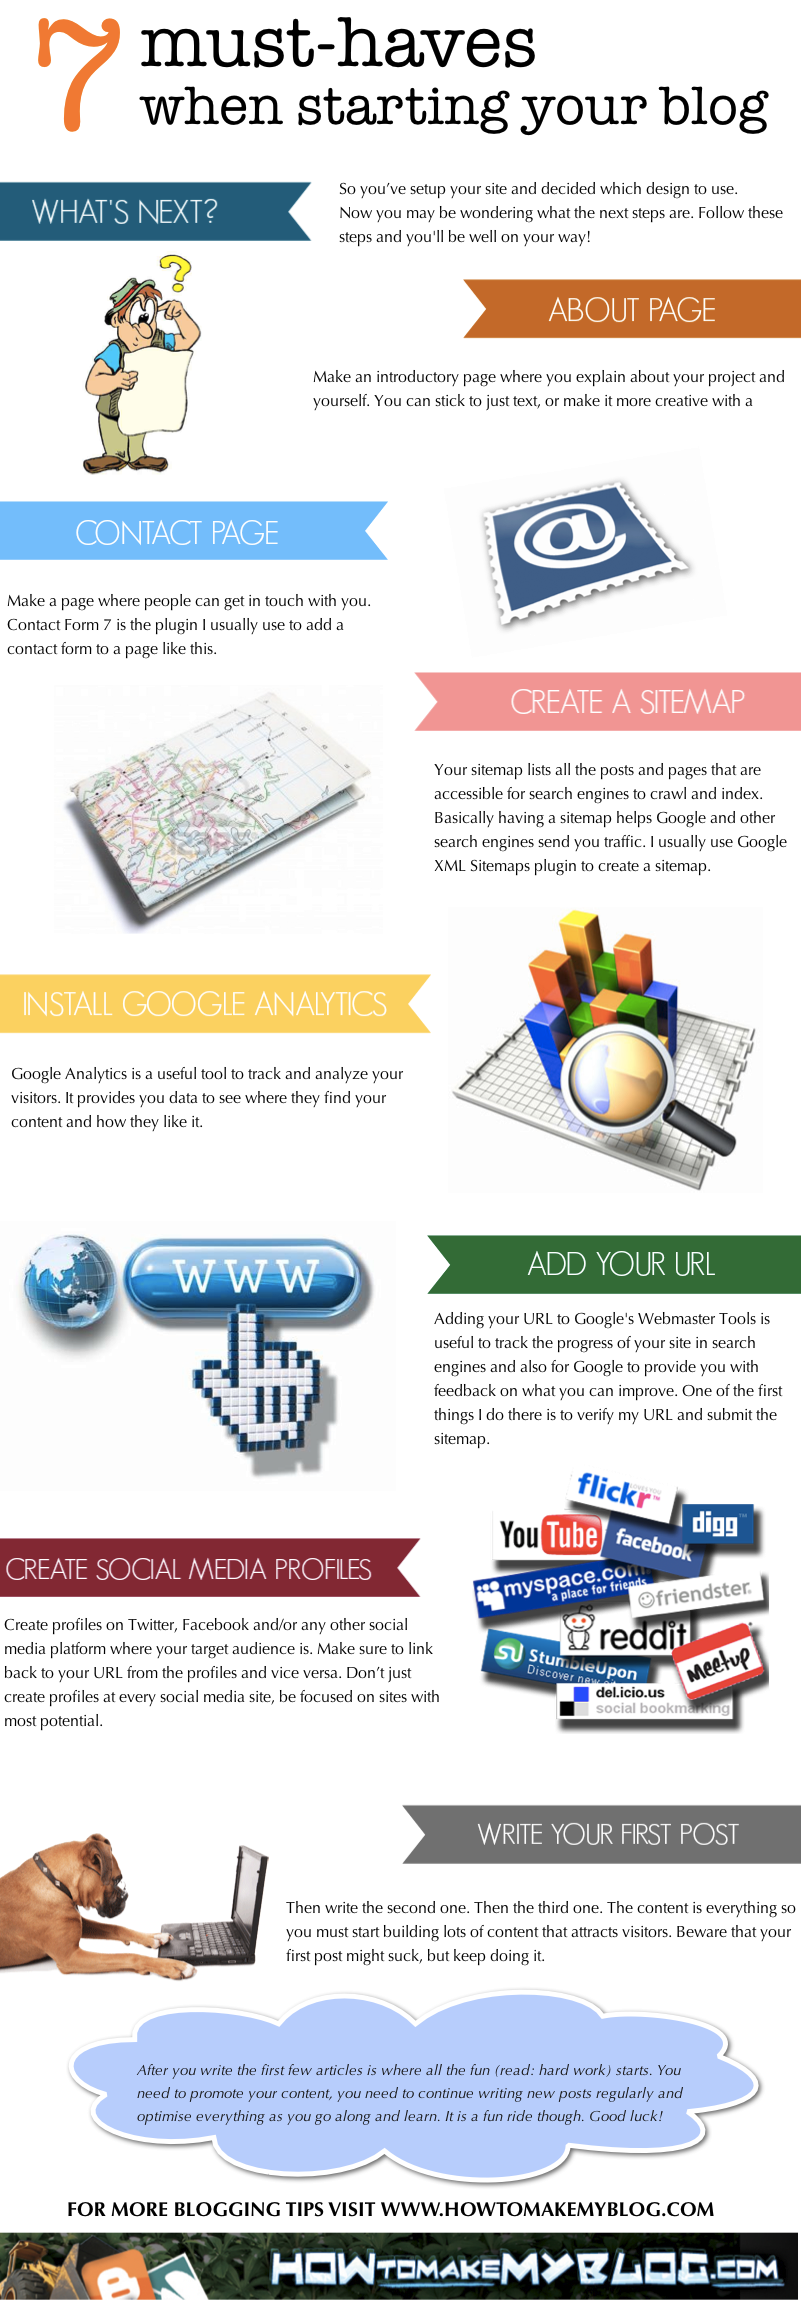 best Business blogs start with your website